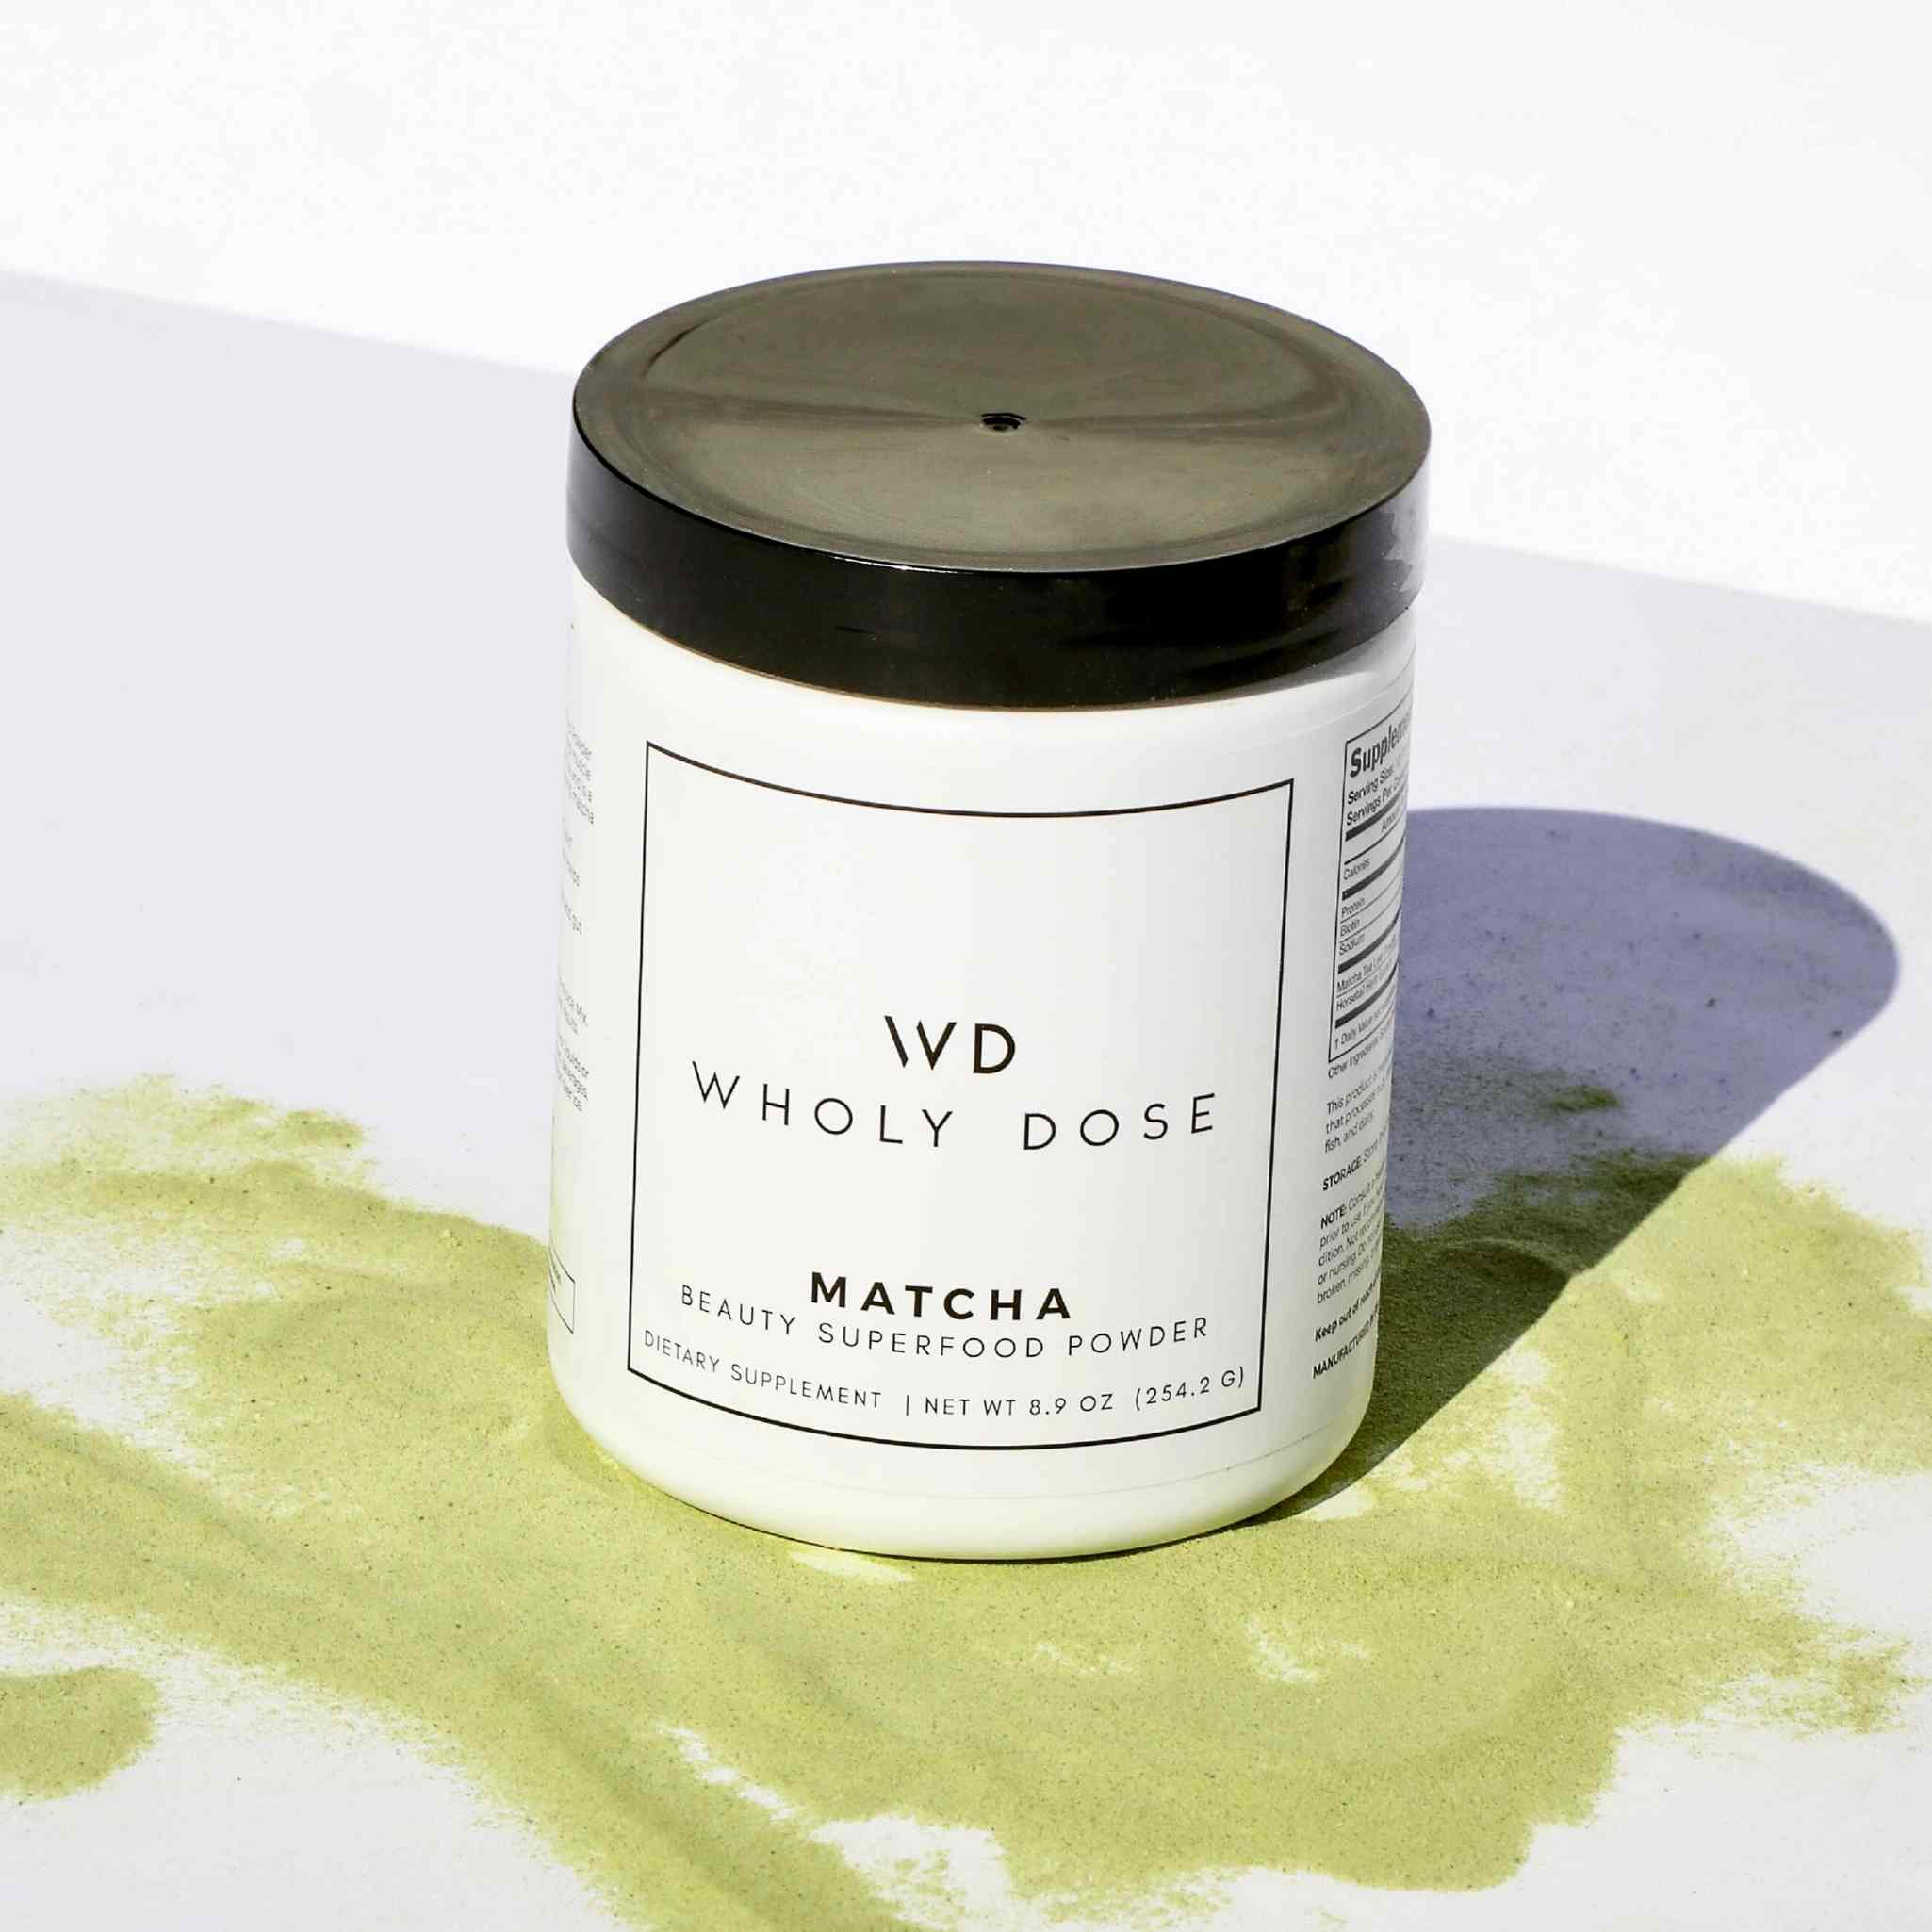 MATCHA Beauty Superfood Powder